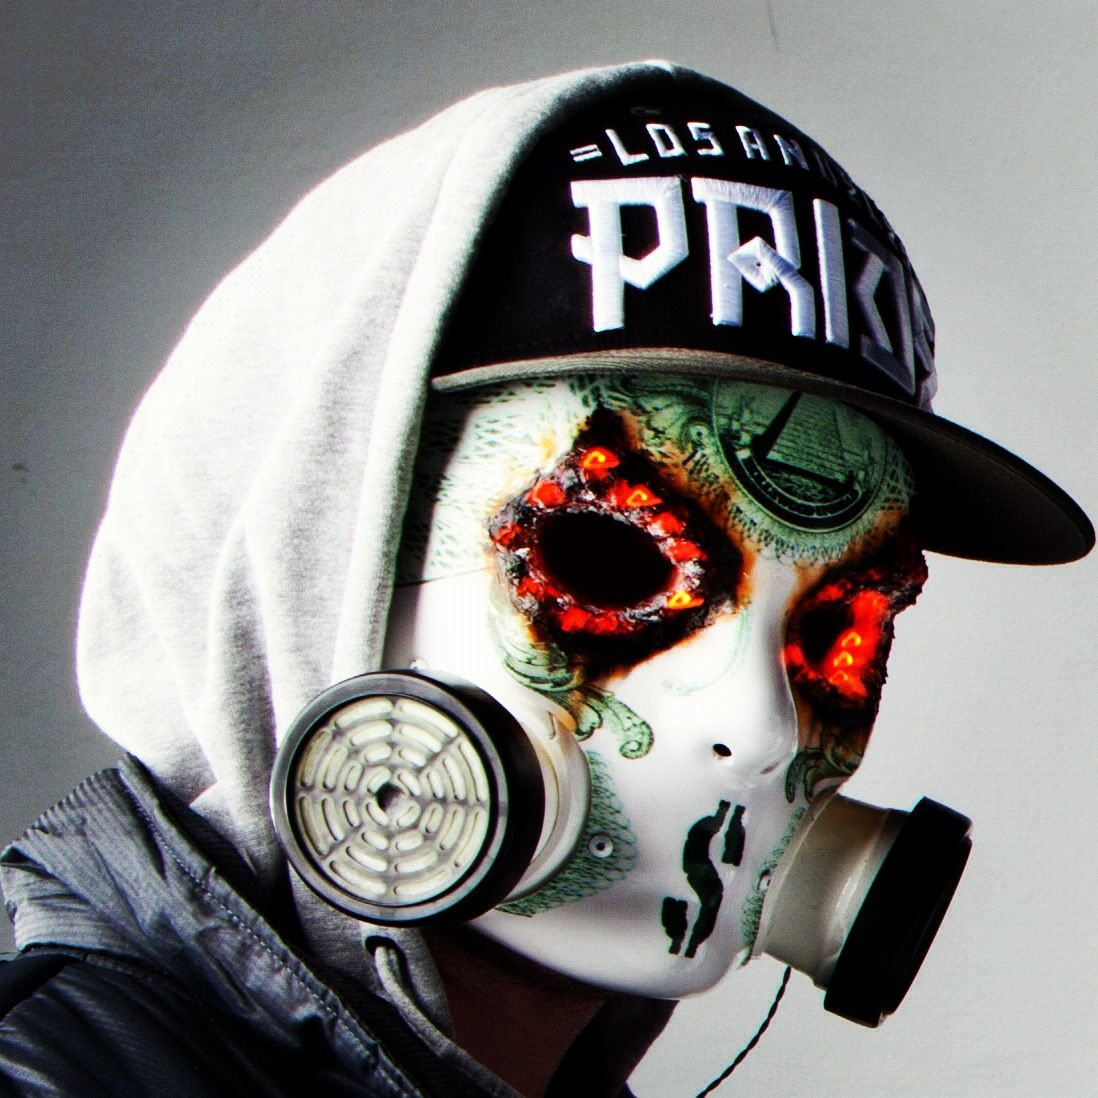 Pin by Jabril Ali on Inspiration in 2019 | Hollywood undead masks